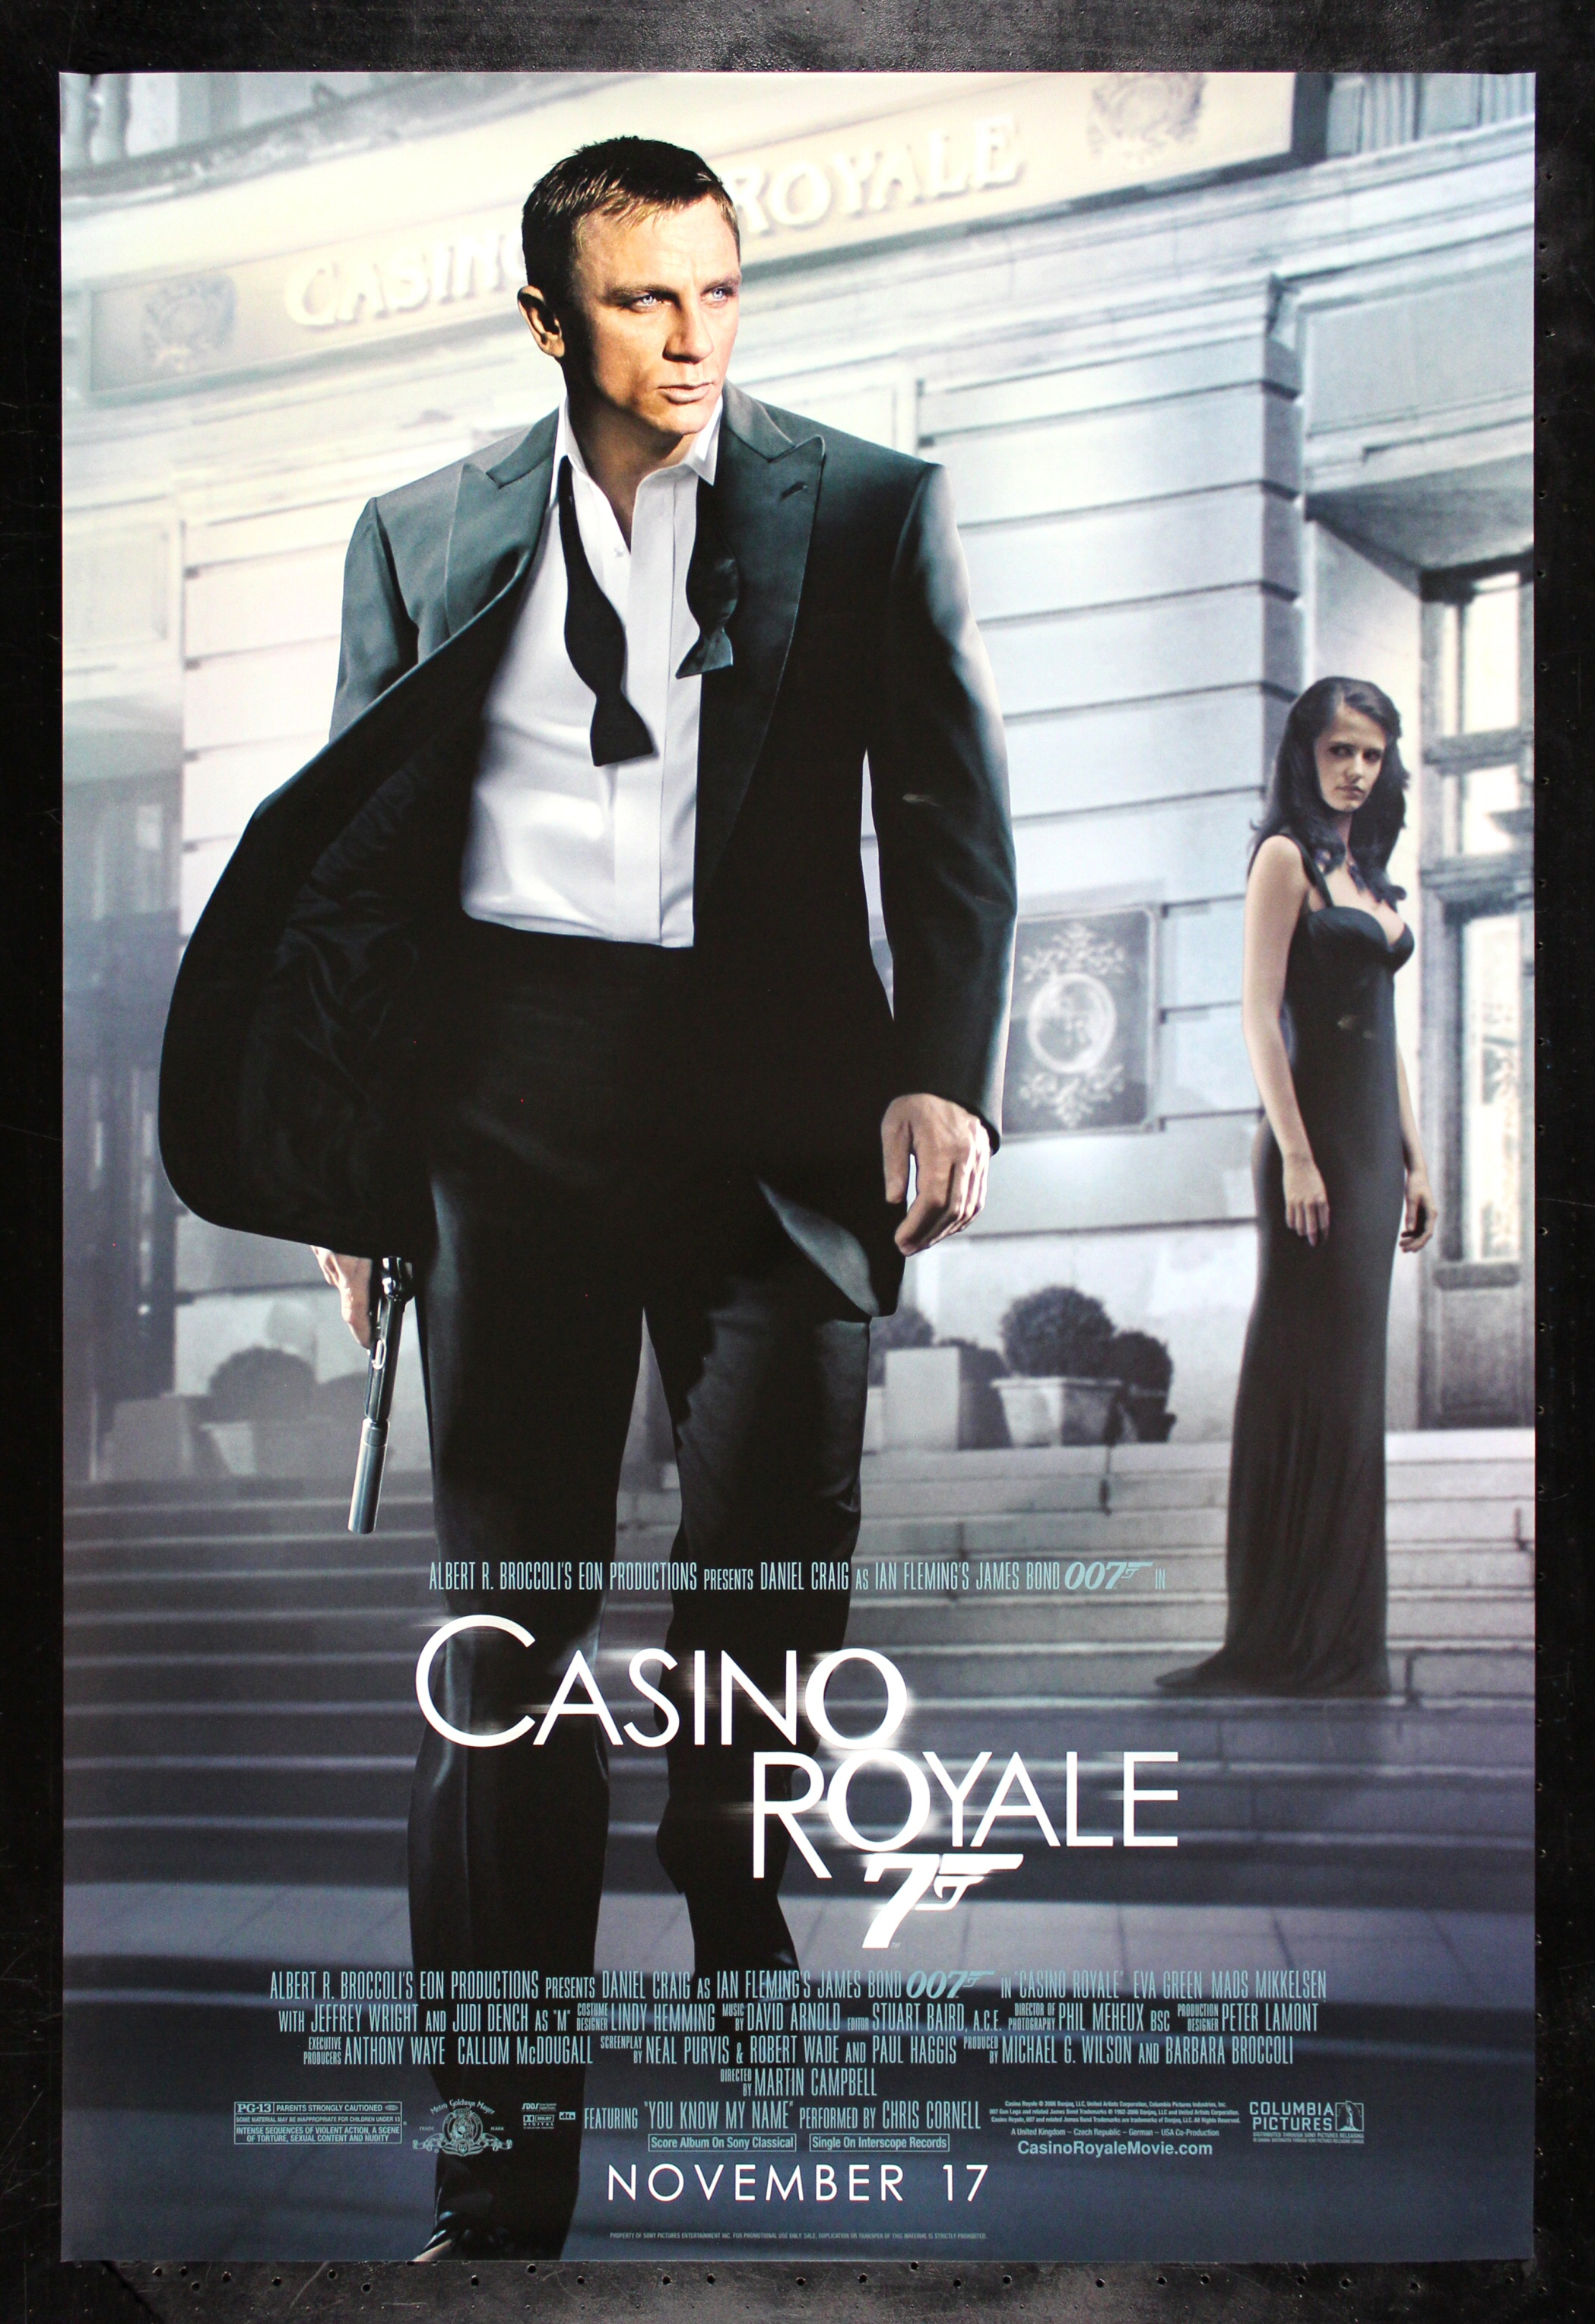 Casino royale full movie in tamil watch online legends casino powwow